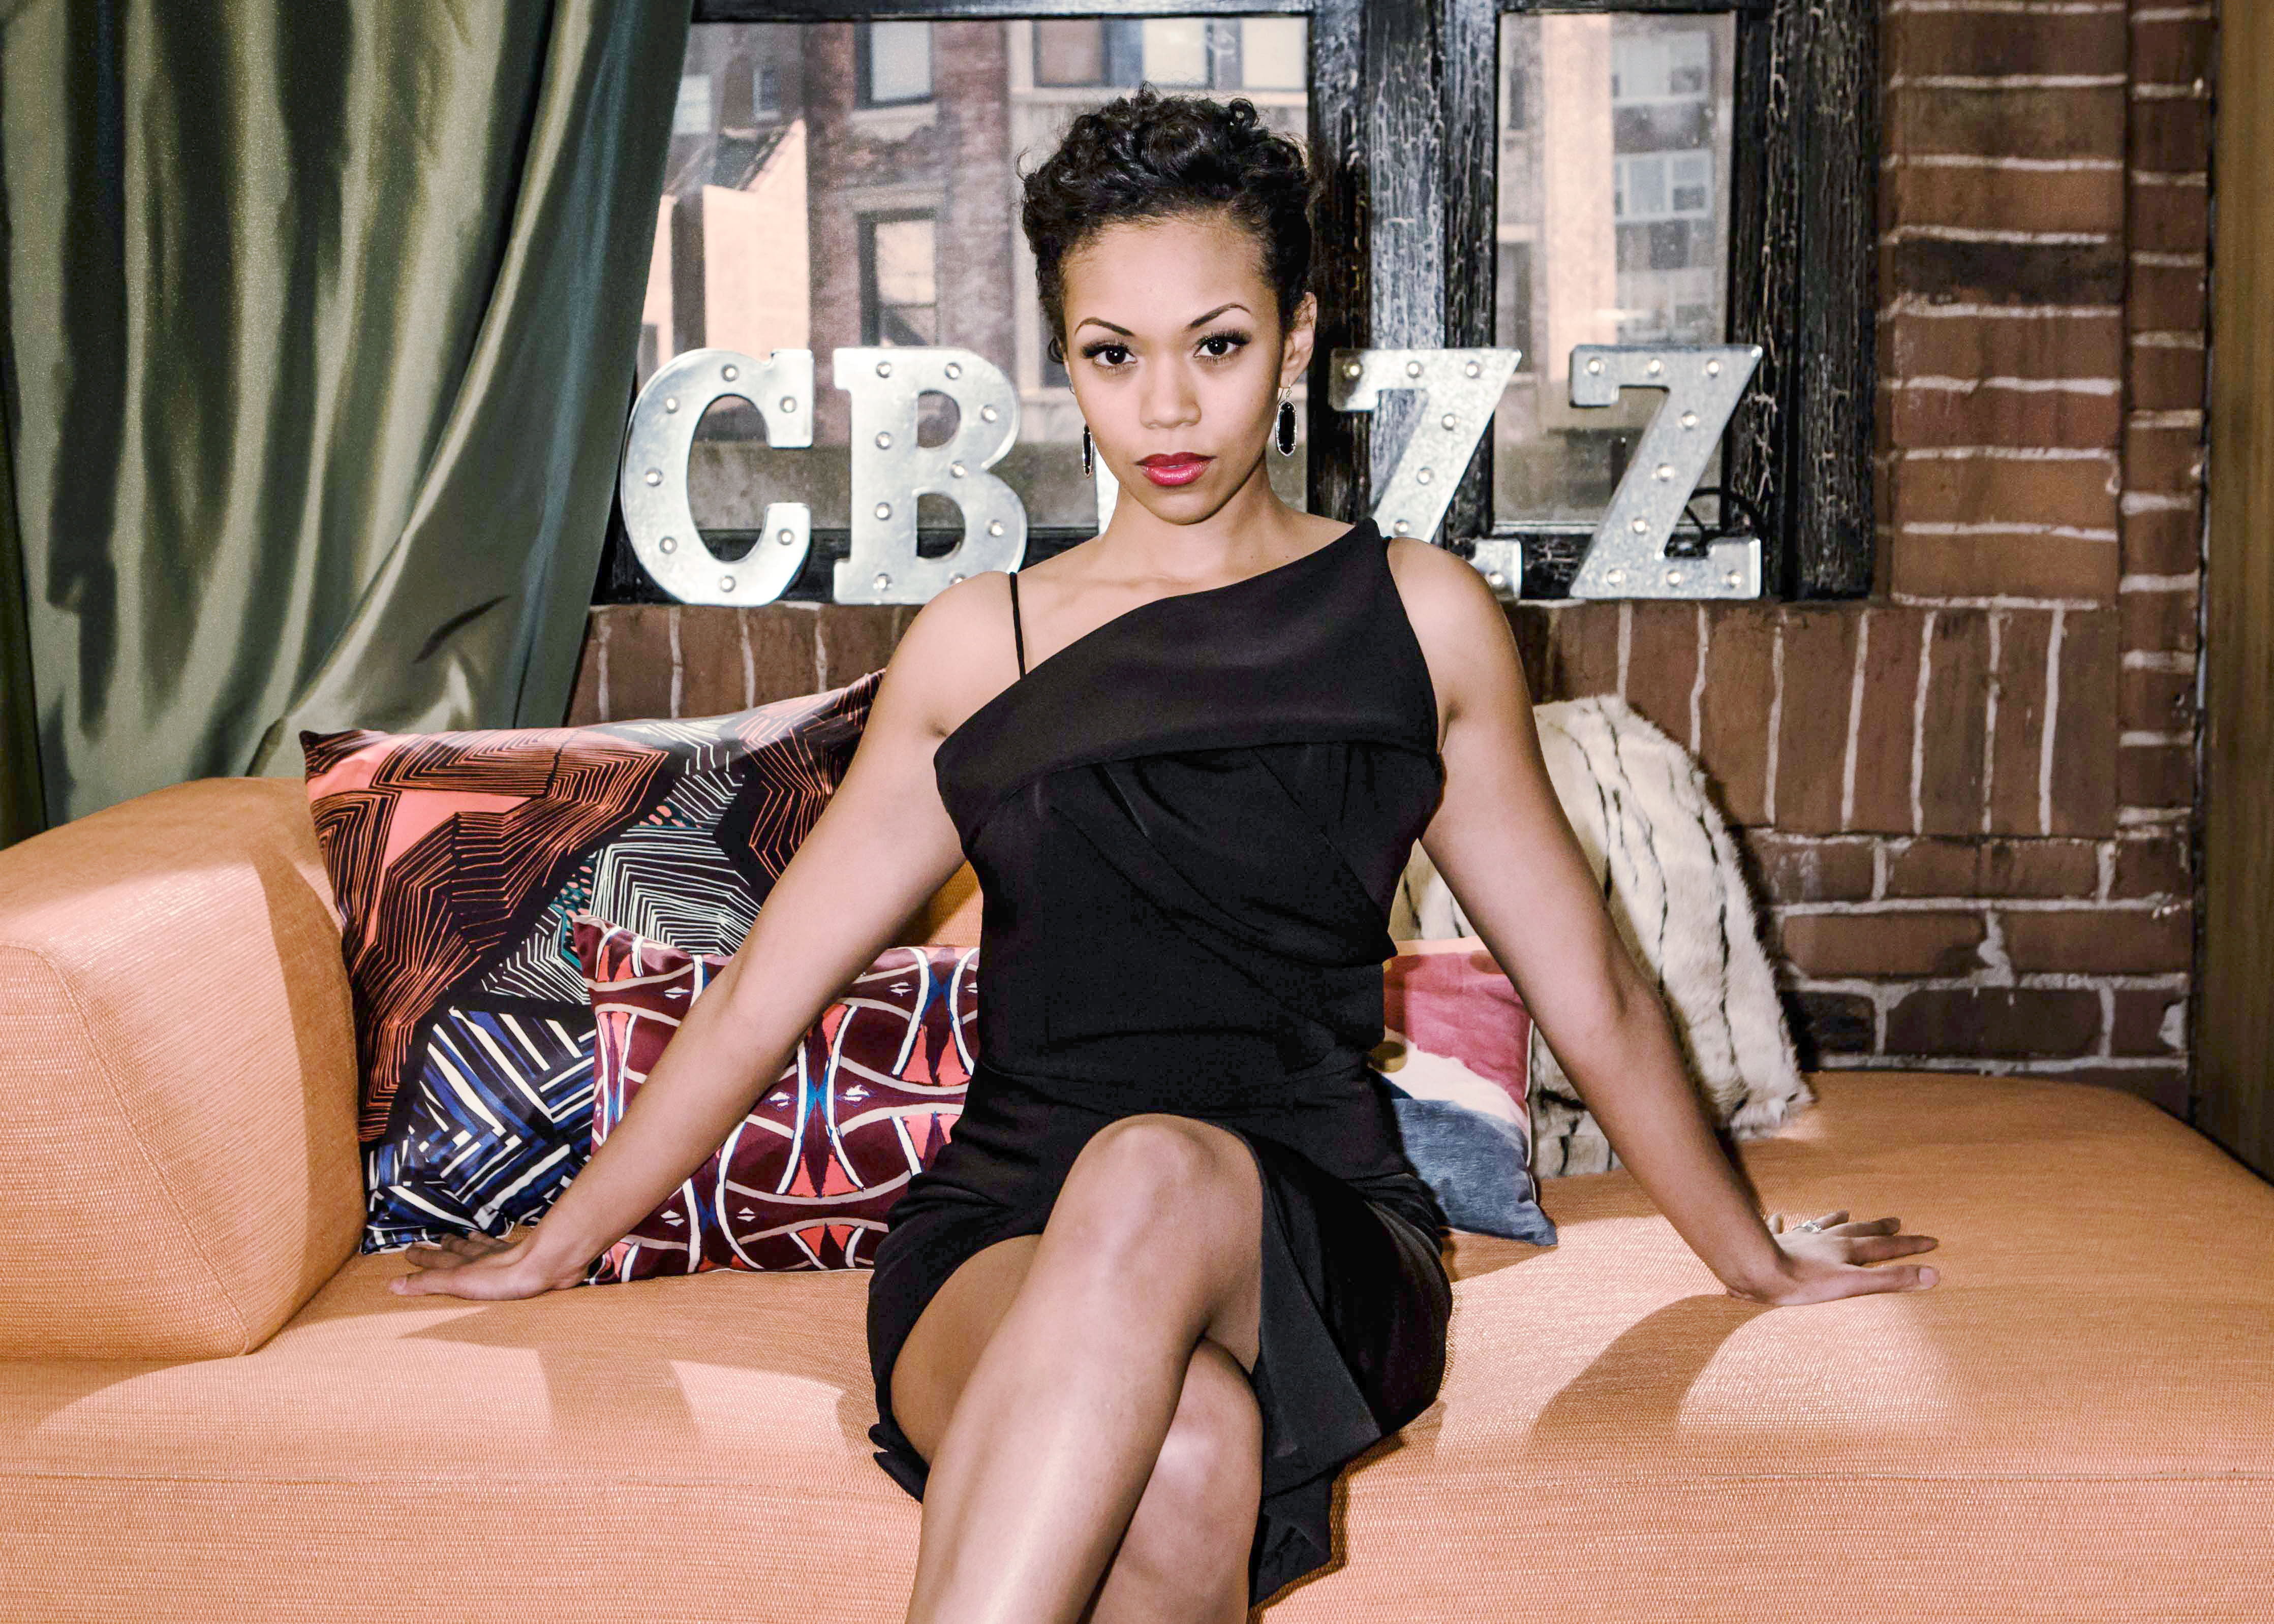 Mishael Morgan on playing Hilary Curtis: I love being a little bad